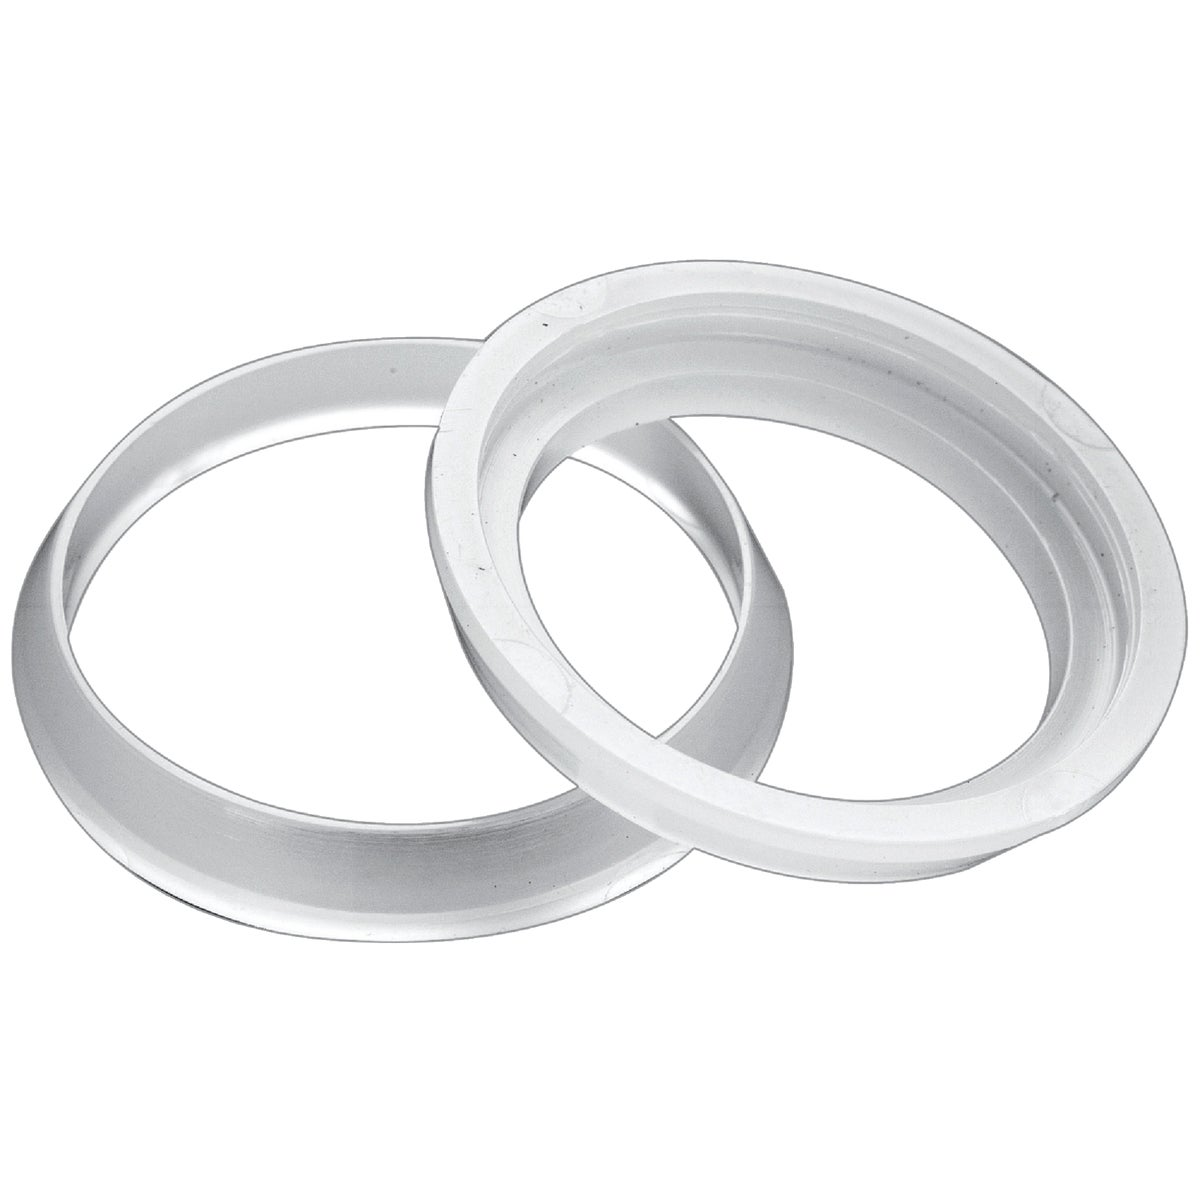 2PK 1-1/2 S/J WASHERS - 405573 by Plumb Pak/keeney Mfg